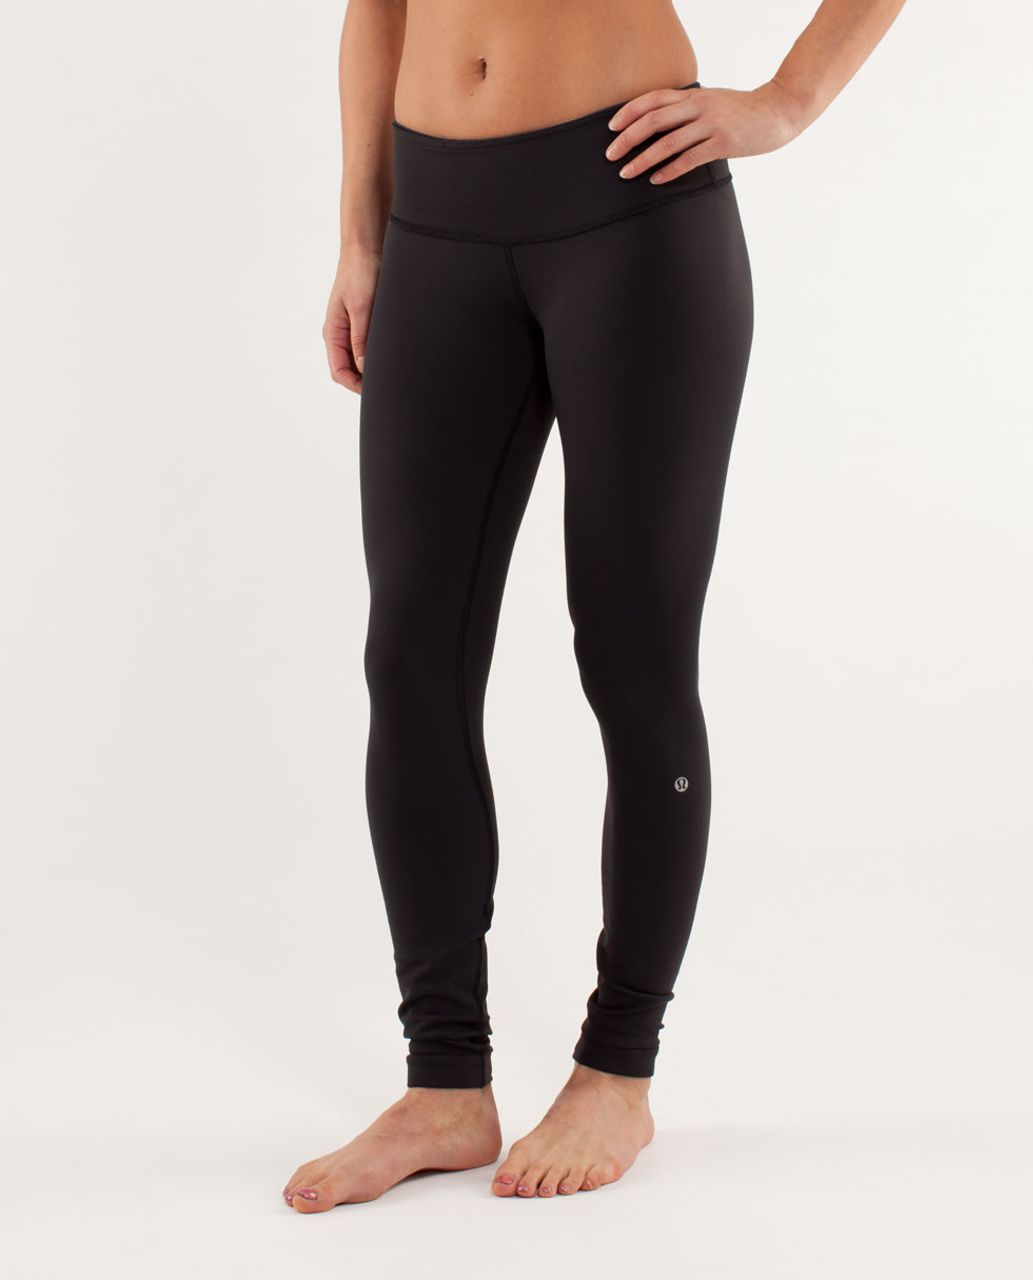 Lululemon Wunder Under Pant *Reversible - Black / Inkwell